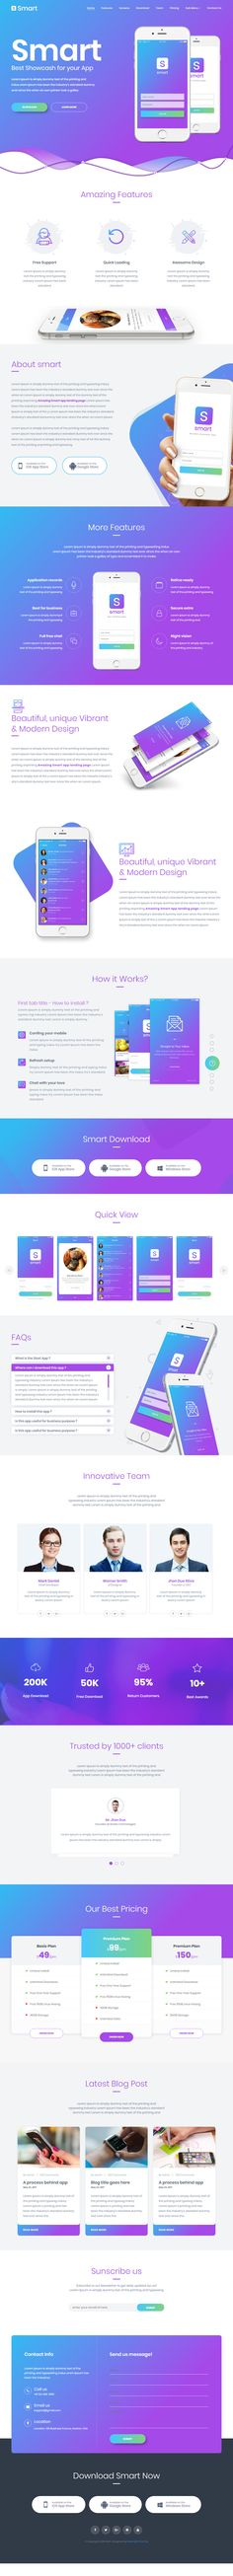 Smart is Premium Retina Responsive Retina #HTML5 Template. Bootstrap Framework. Parallax Scrolling. One Page. If you like this #MobileApp Template visit our handpicked list of best HTML5 #LandingPage Templates at: http://www.responsivemiracle.com/best-html5-landing-page-templates-2018/